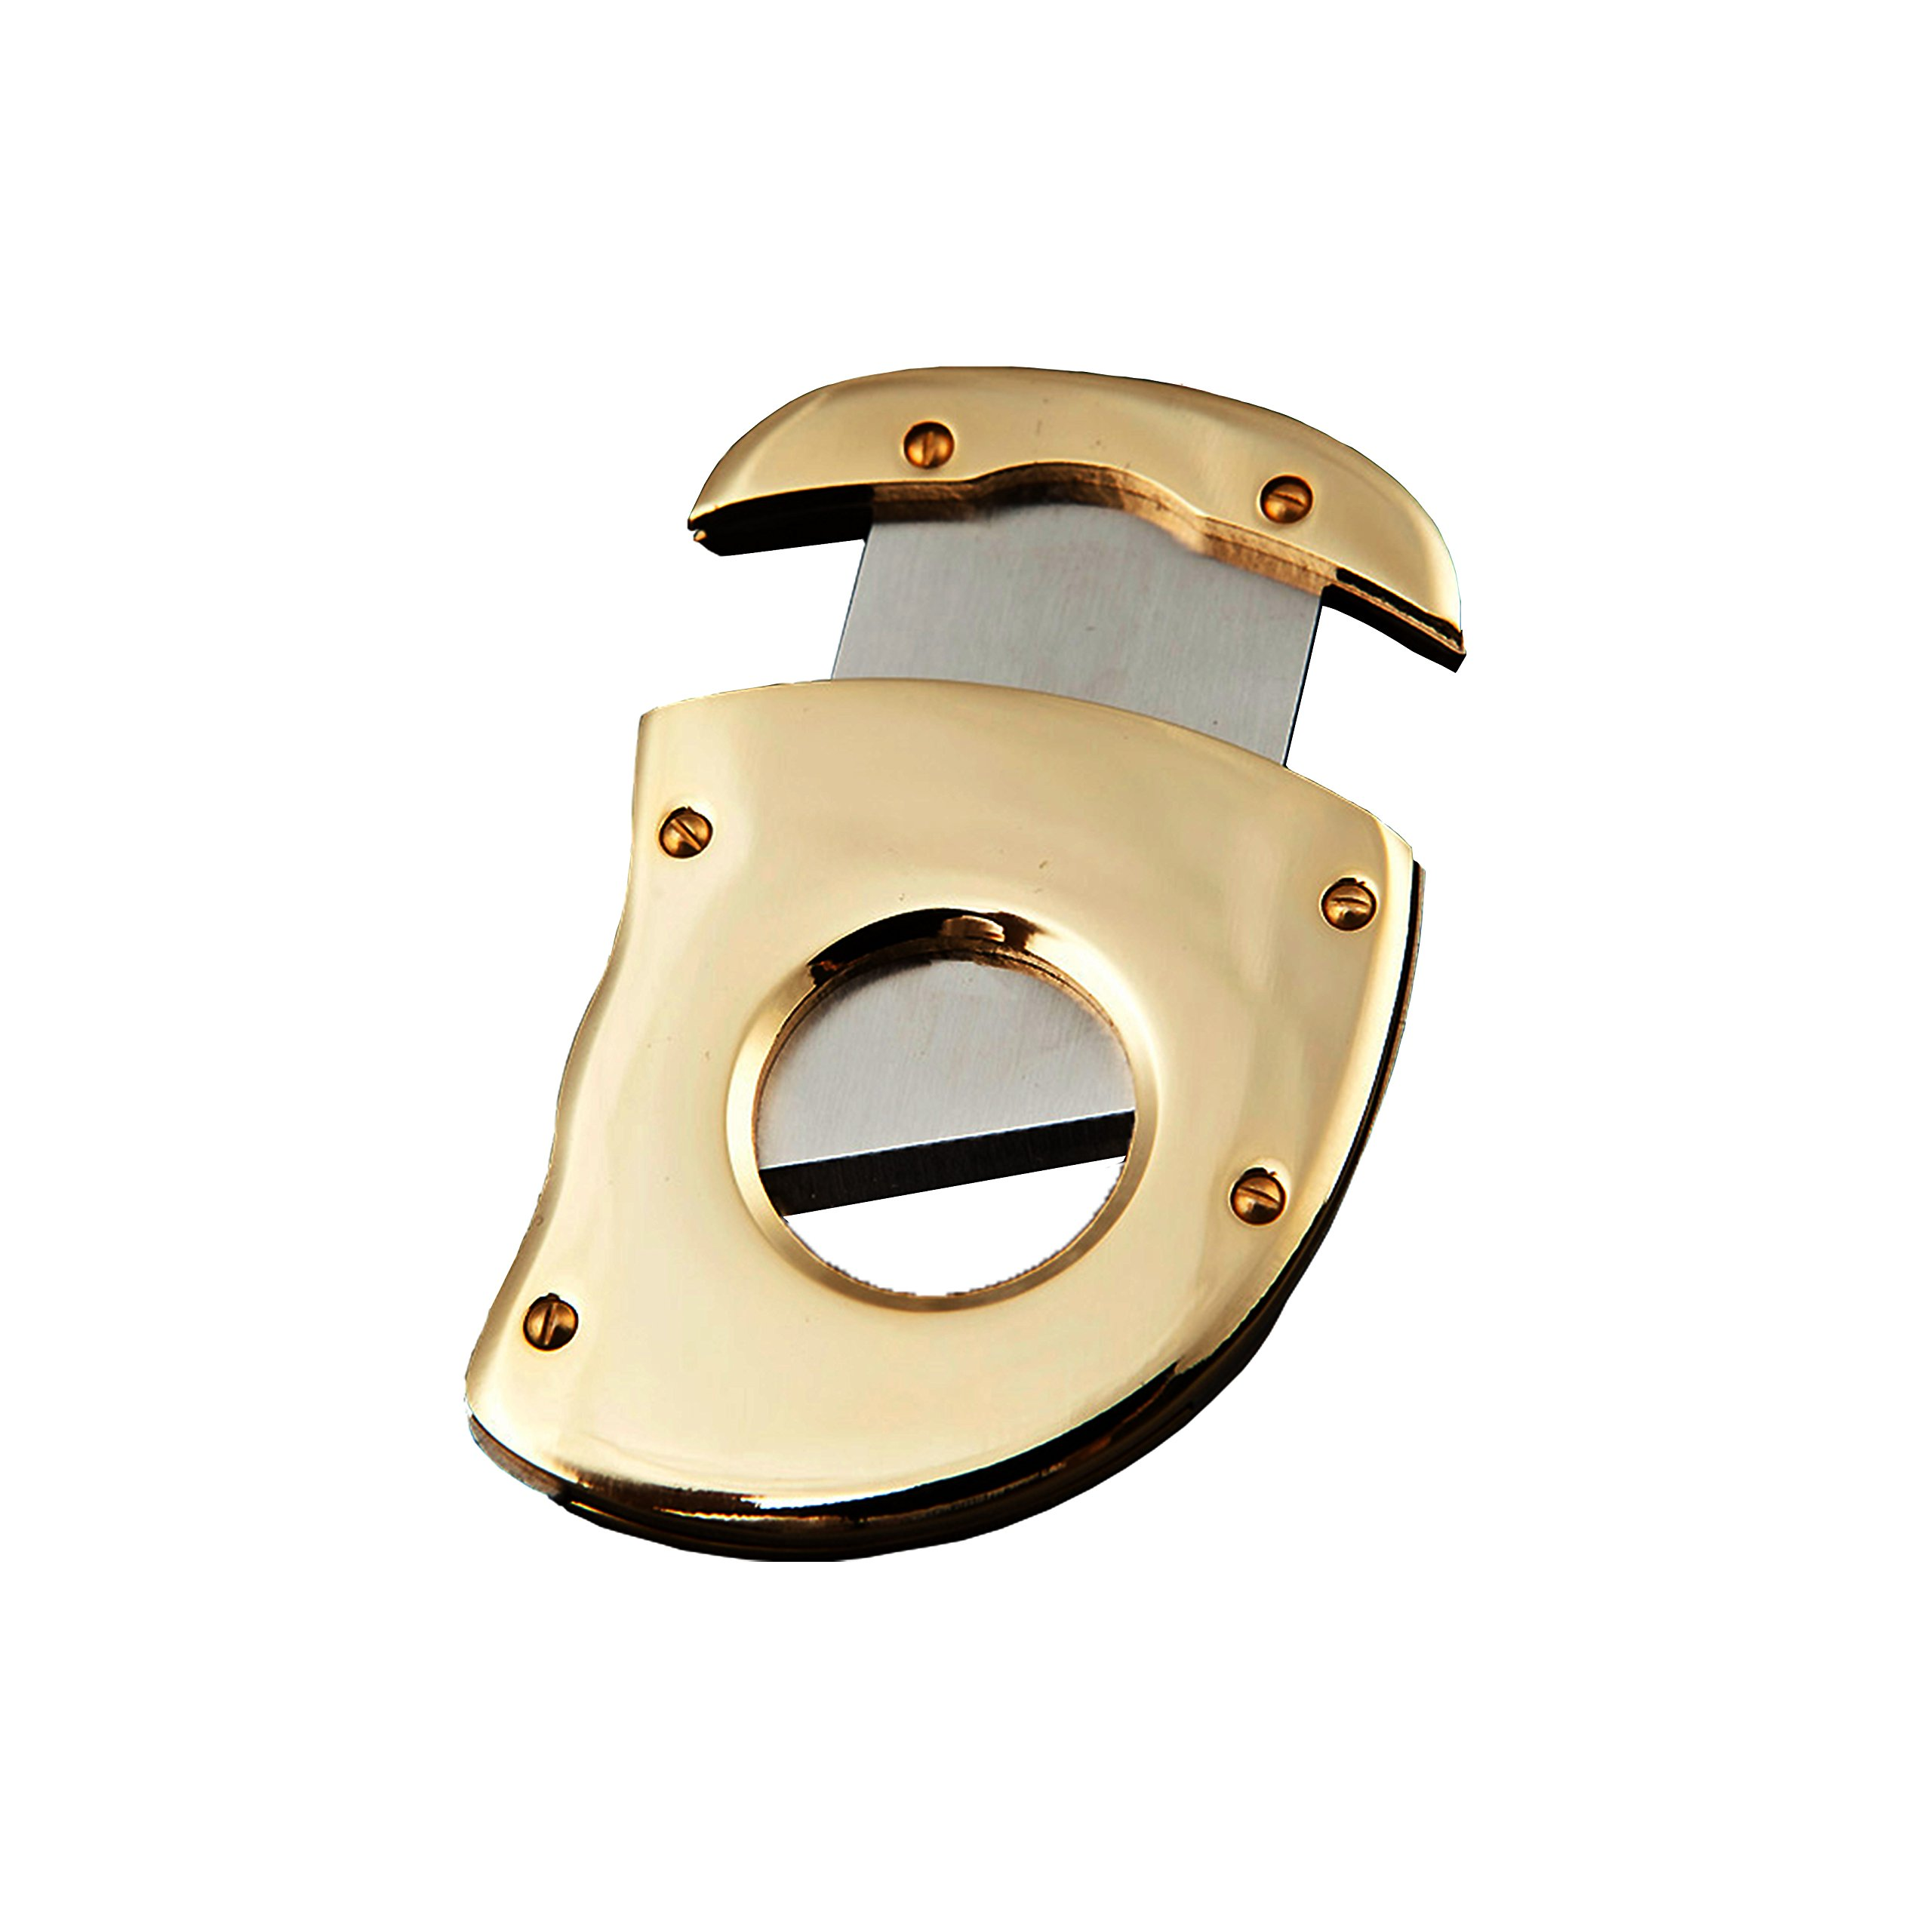 Official High End Gold Cigar Cutter - Special Stylish Design, Luxury Golden Cigar Cutter - Sharp Guillotine Blade - Cuts Cigars with Ease, Safe & Easy to Use - Pocket Size Cigar Cutter